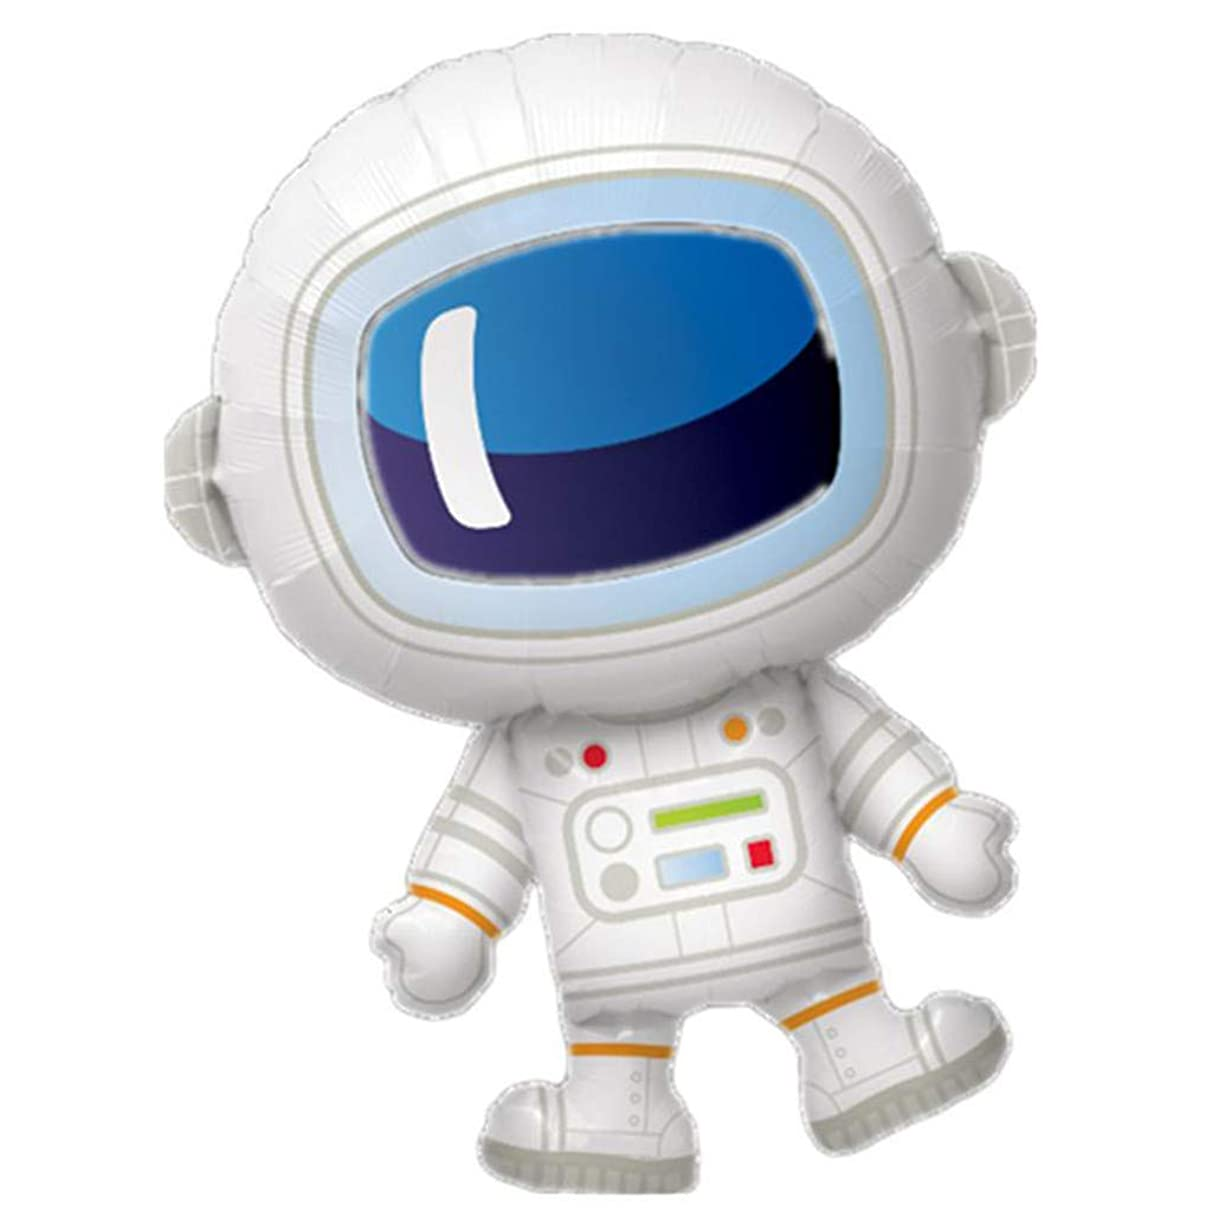 Binory 5pcs Astronaut Shaped Balloon Space Themed Party Favors Decorations, Children's Universe Galaxy Birthday Party Astronaut and Rocket Balloons Room Decor